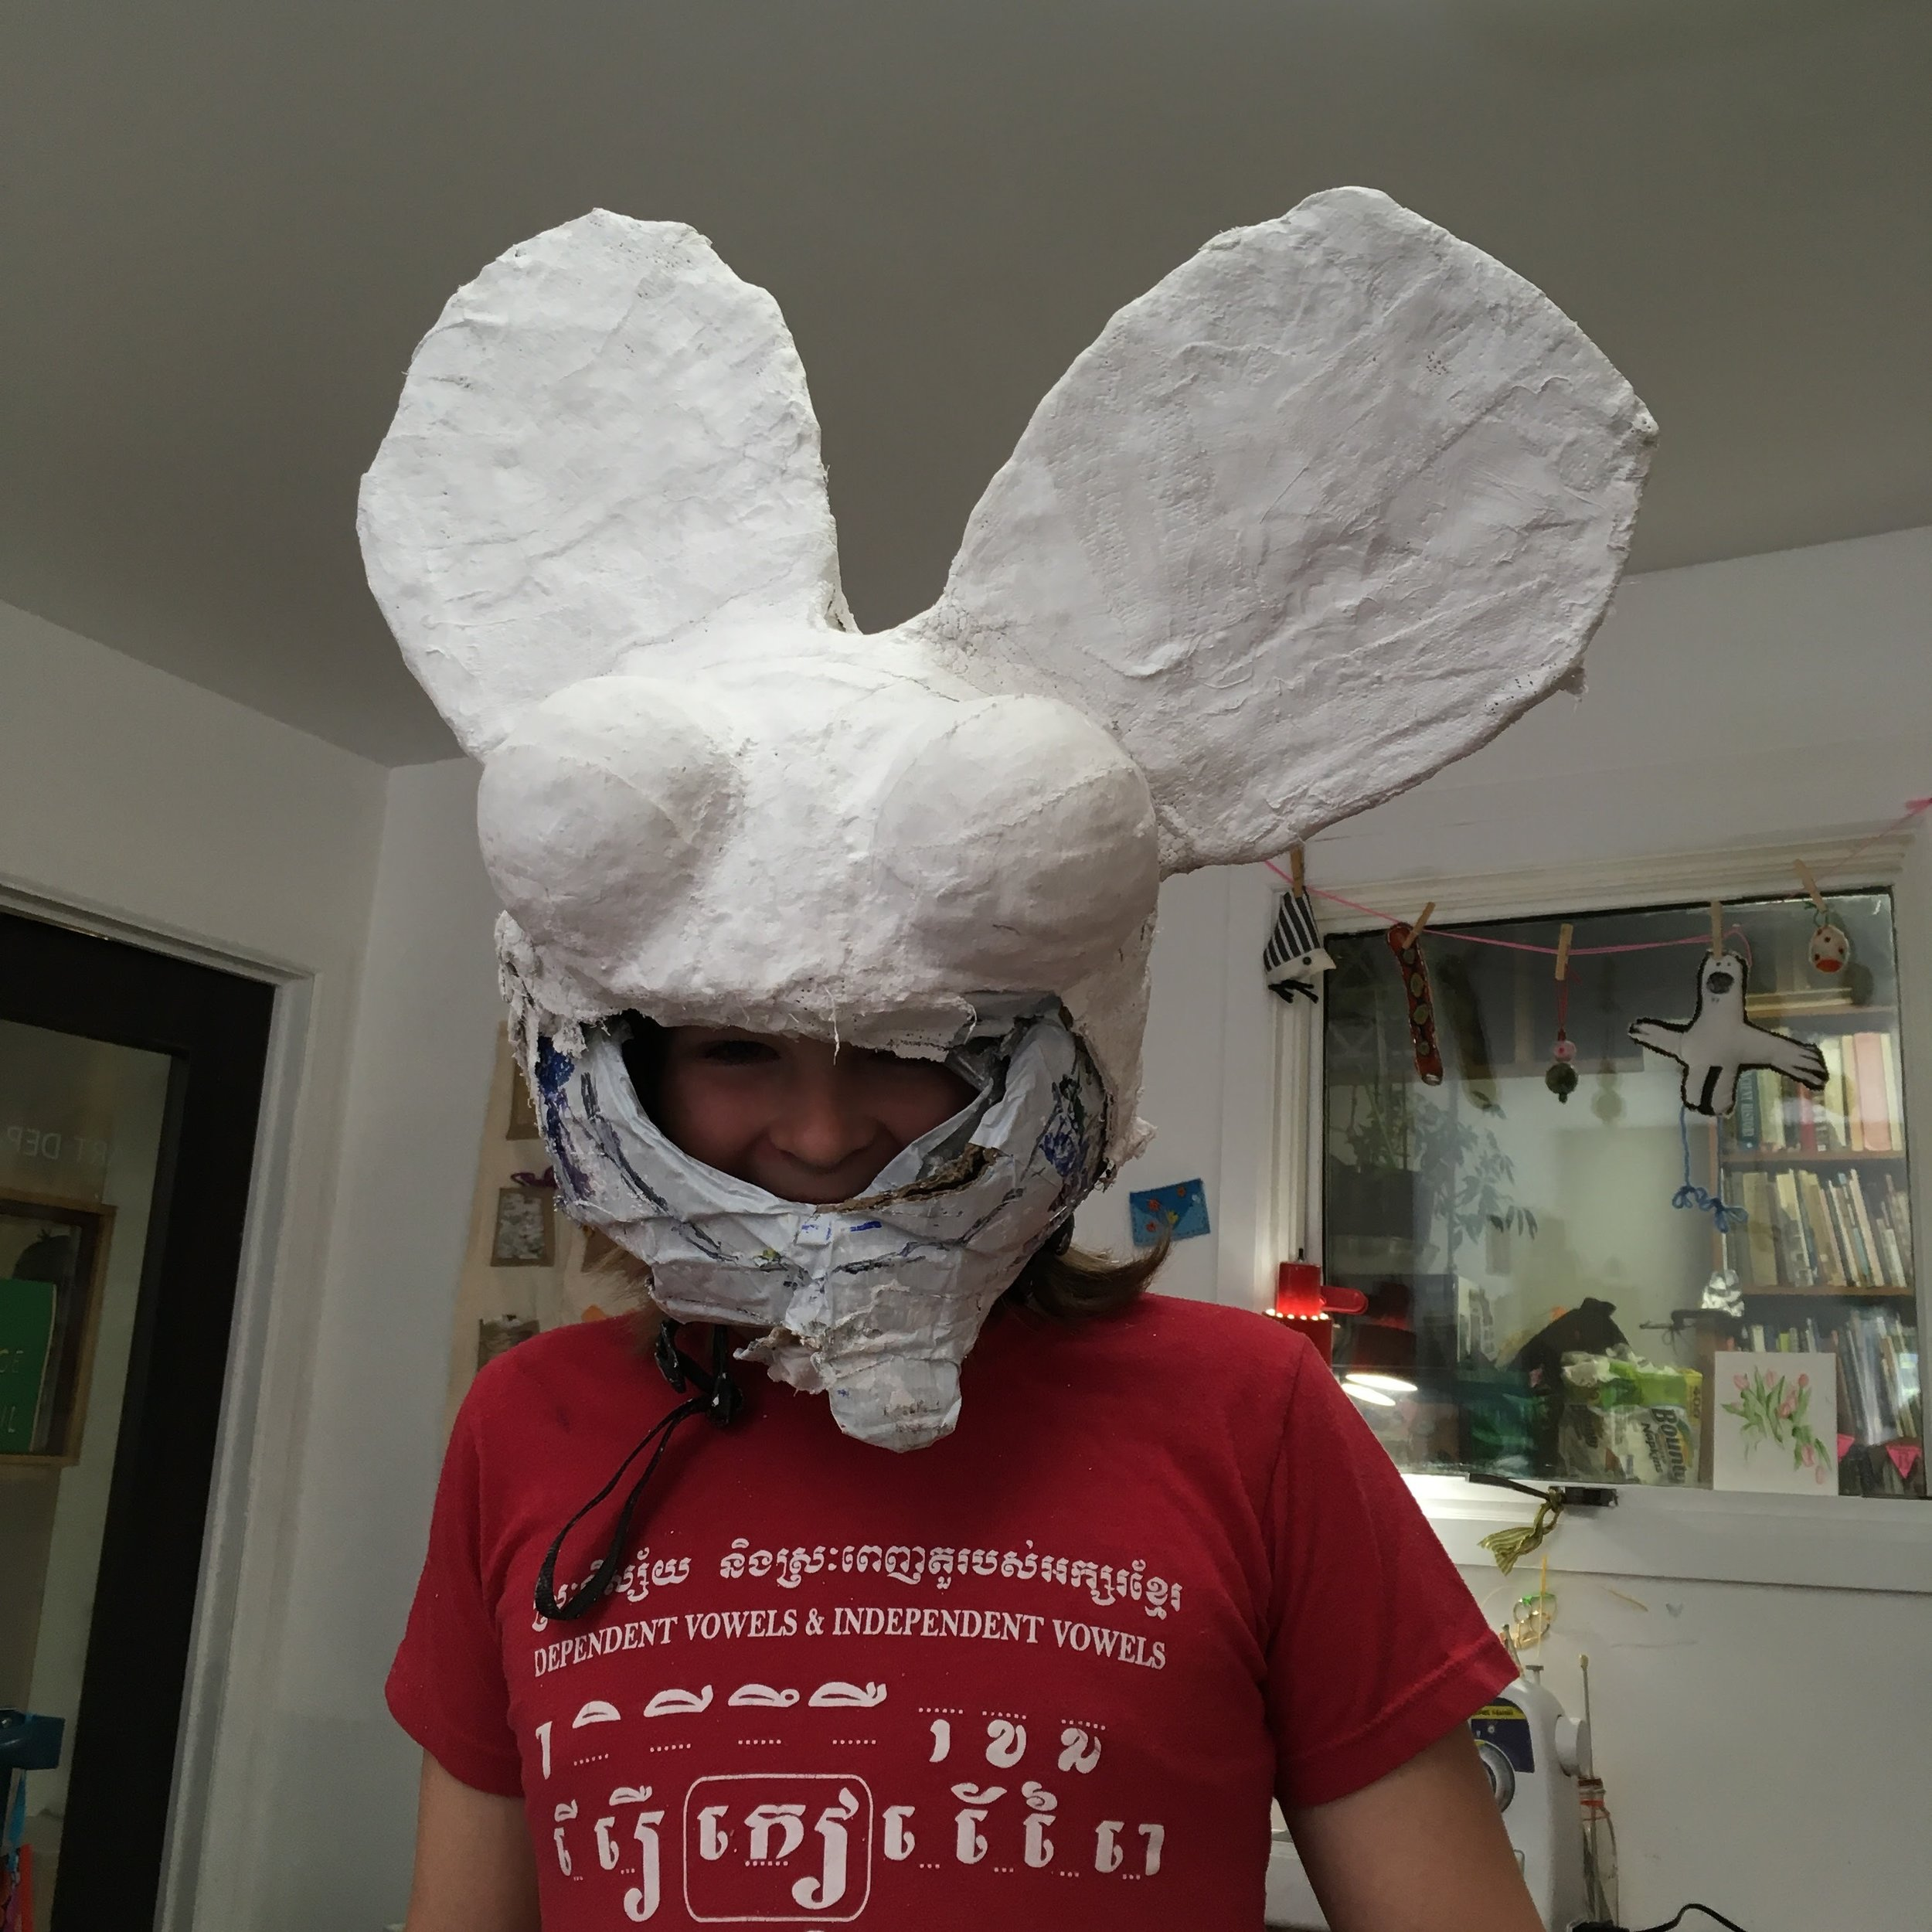 Getting ready for DeadMau5 concert and pride parade with an epic sculptural creation.